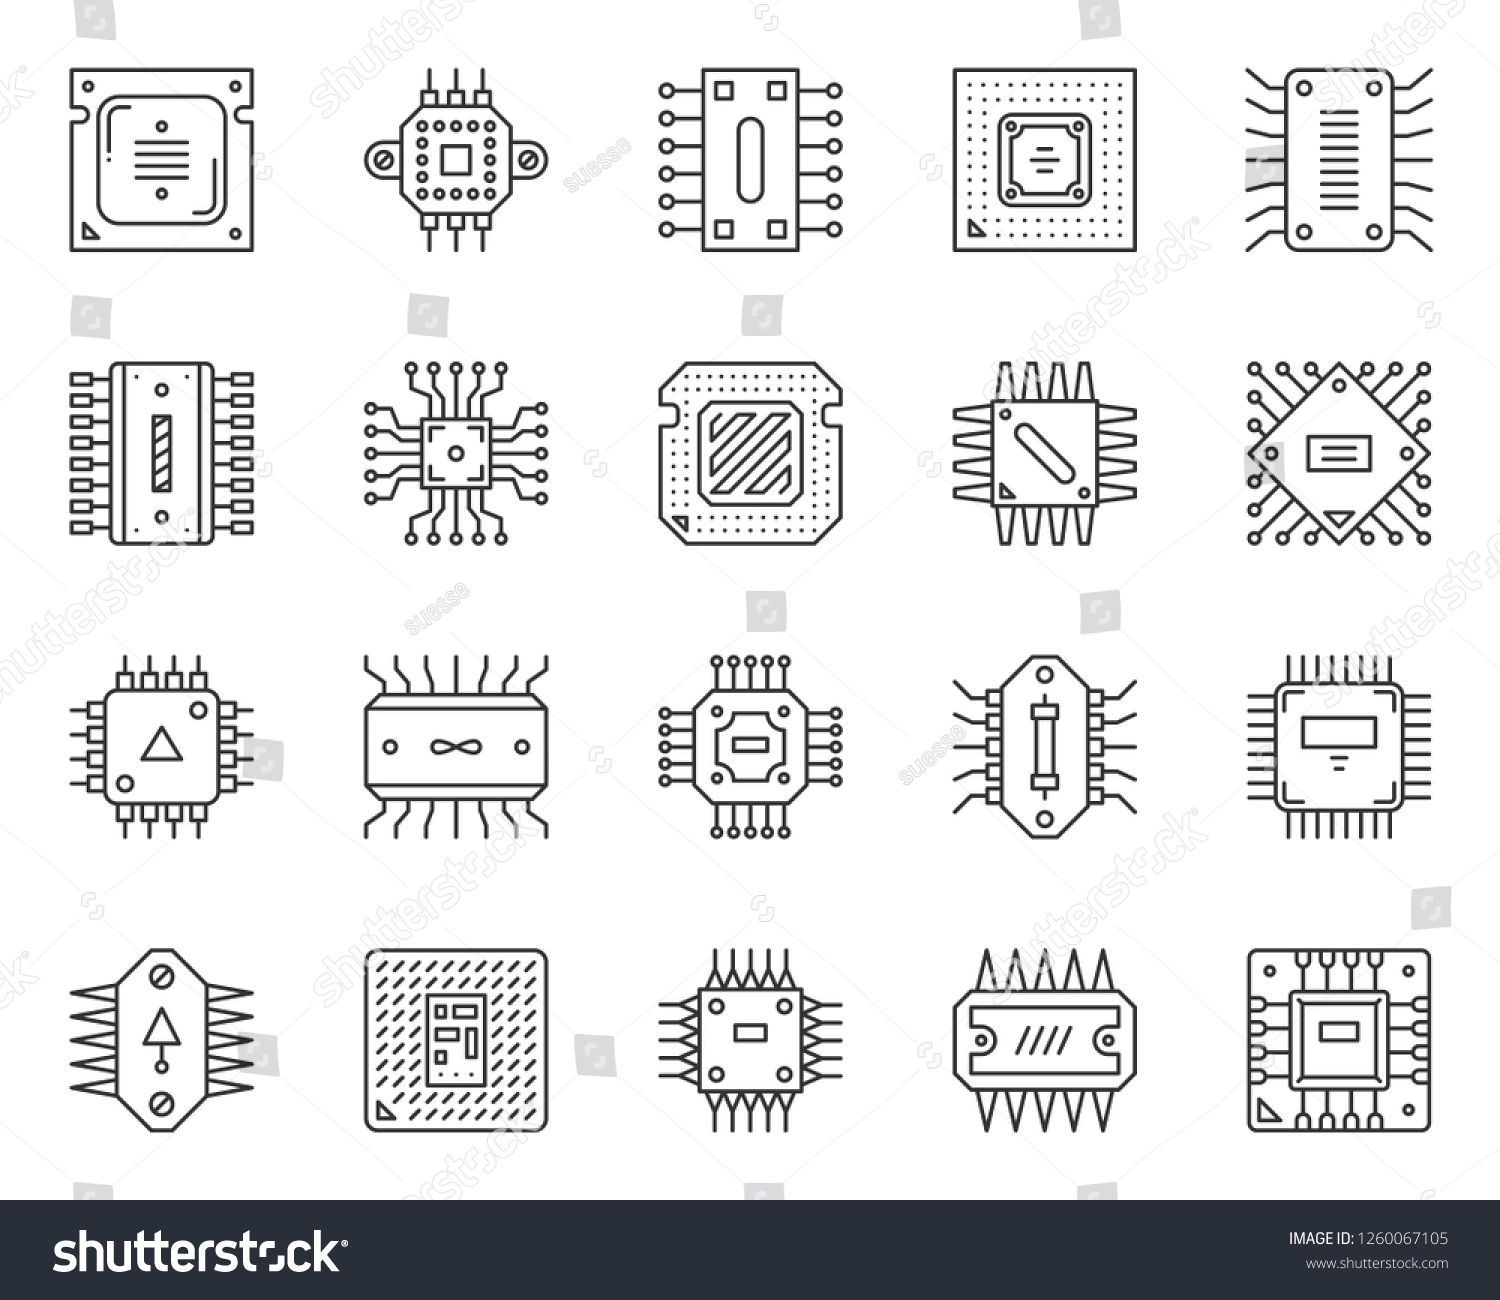 Microchip Thin Line Icon Set Outline Web Sign Kit Of Cpu Pcb Linear Icons Of Abstract Circuit Hi Tech Electronics Technology Micro In 2020 Line Icon Icon Set Icon